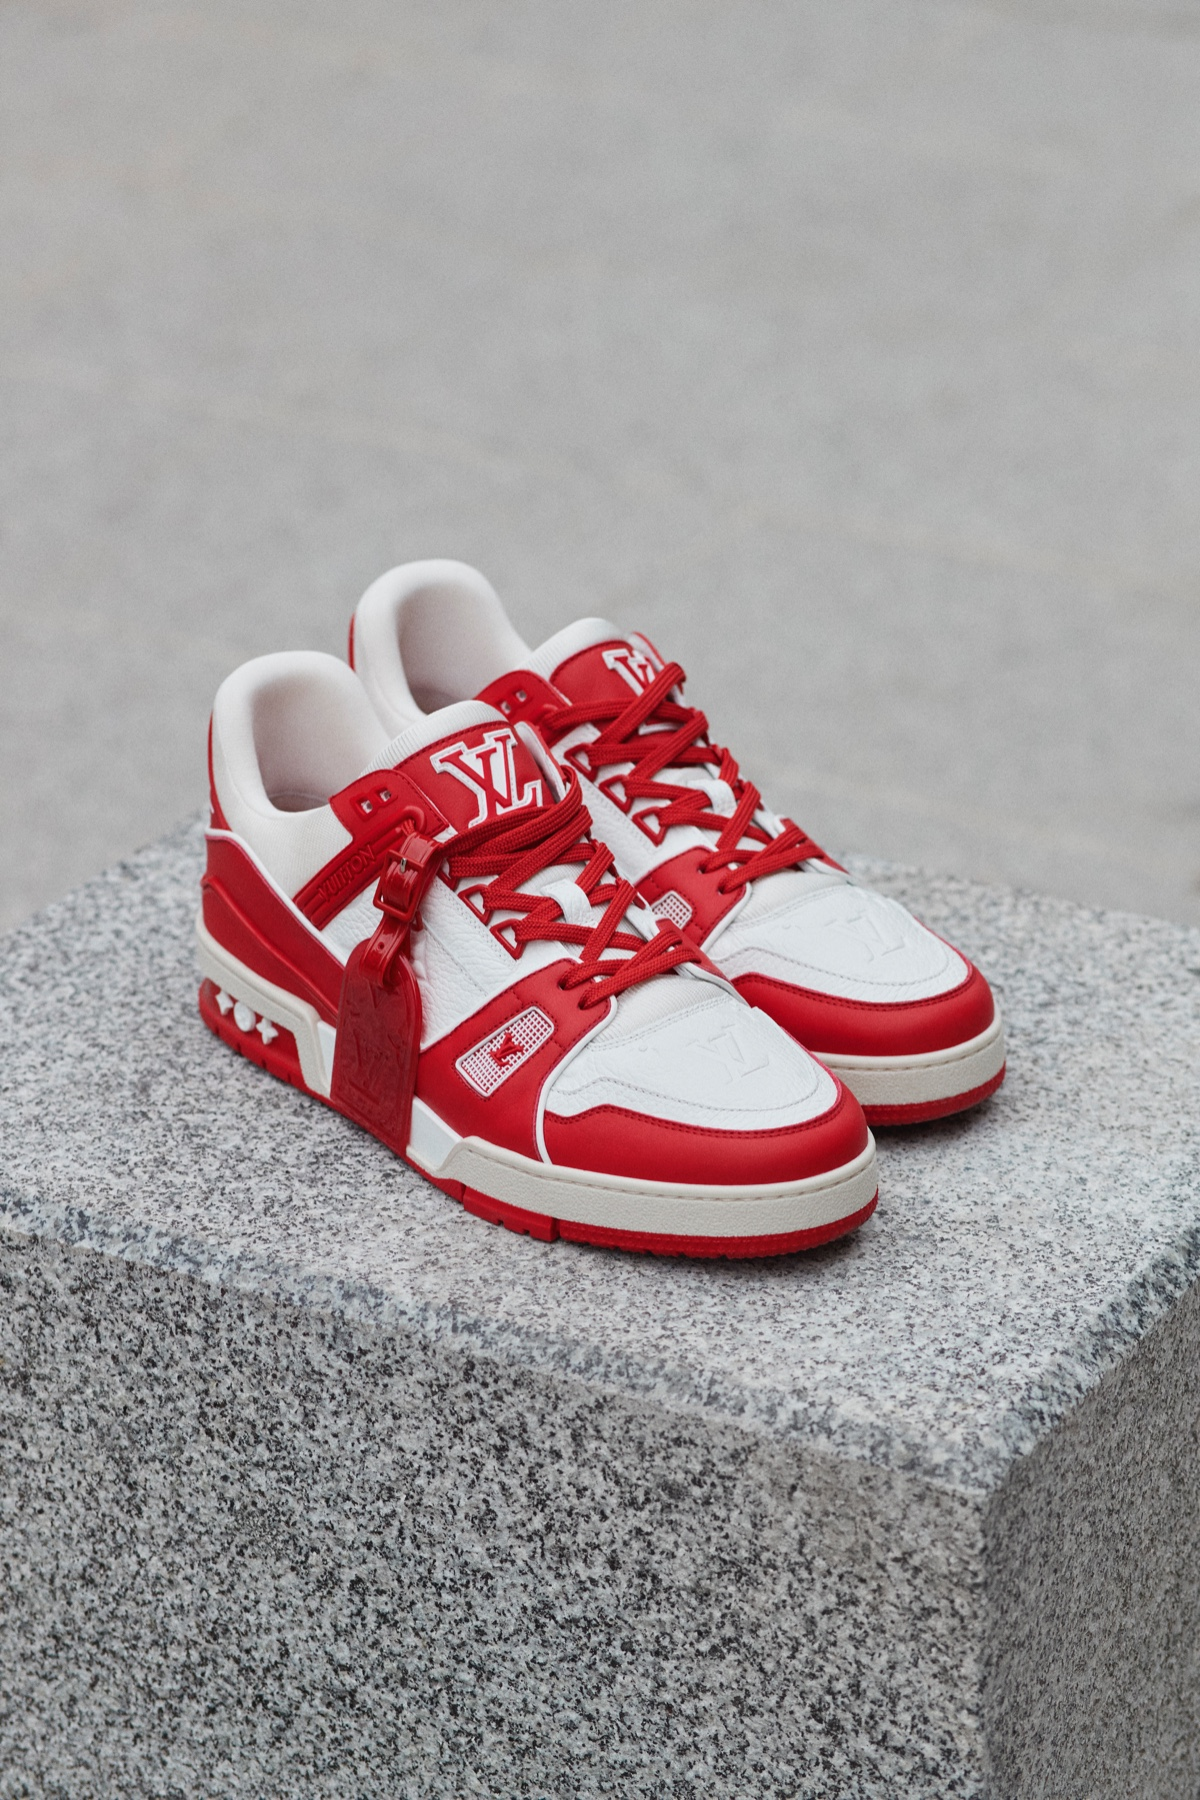 Louis Vuitton LV Trainer (RED) AIDS